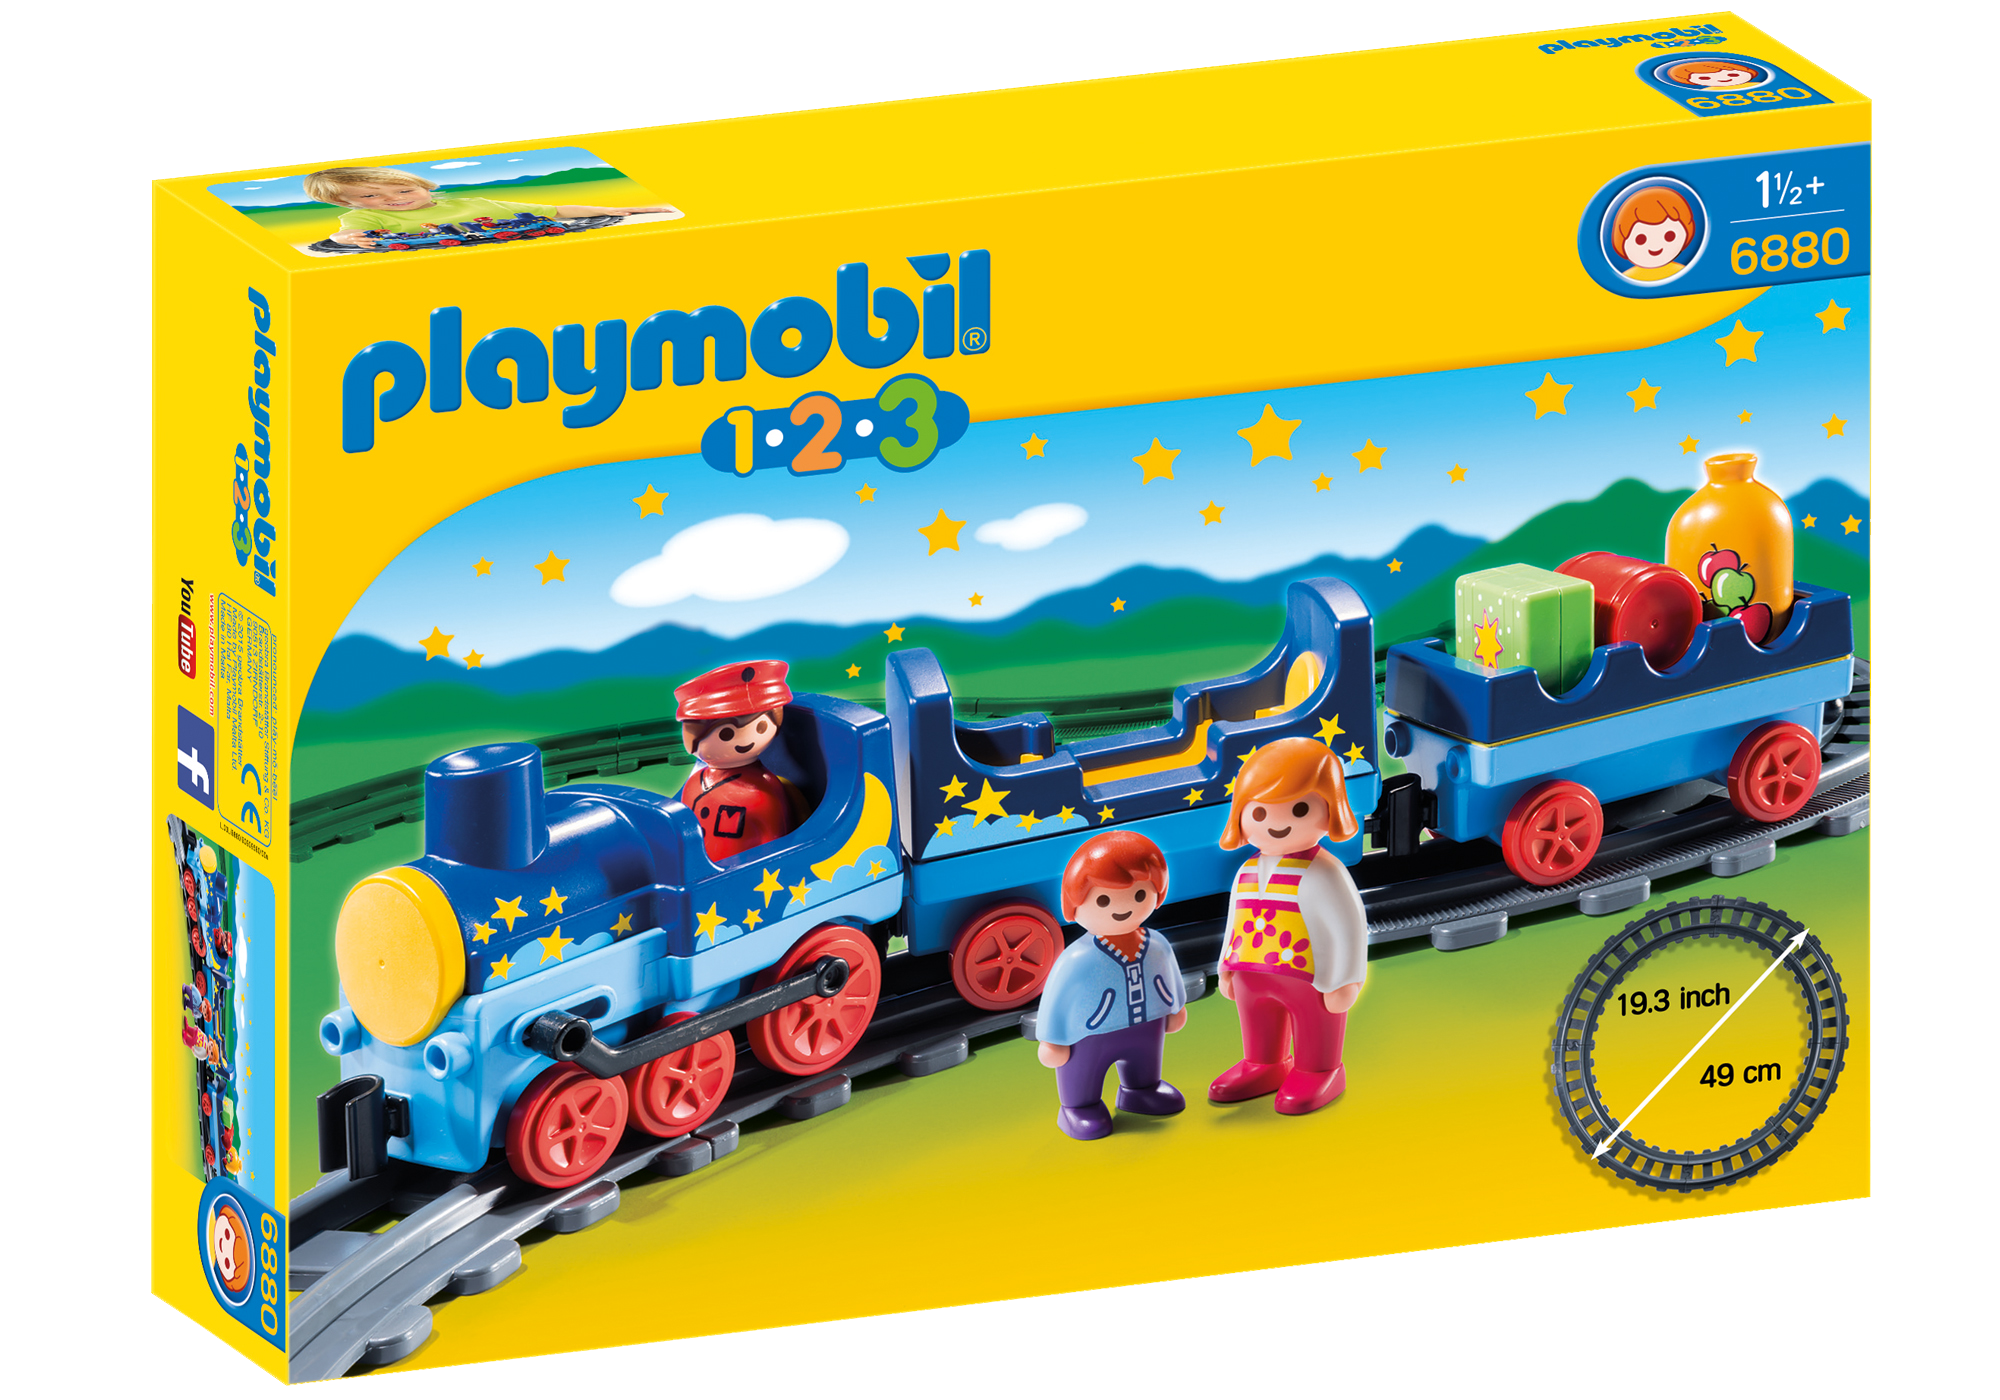 http://media.playmobil.com/i/playmobil/6880_product_box_front